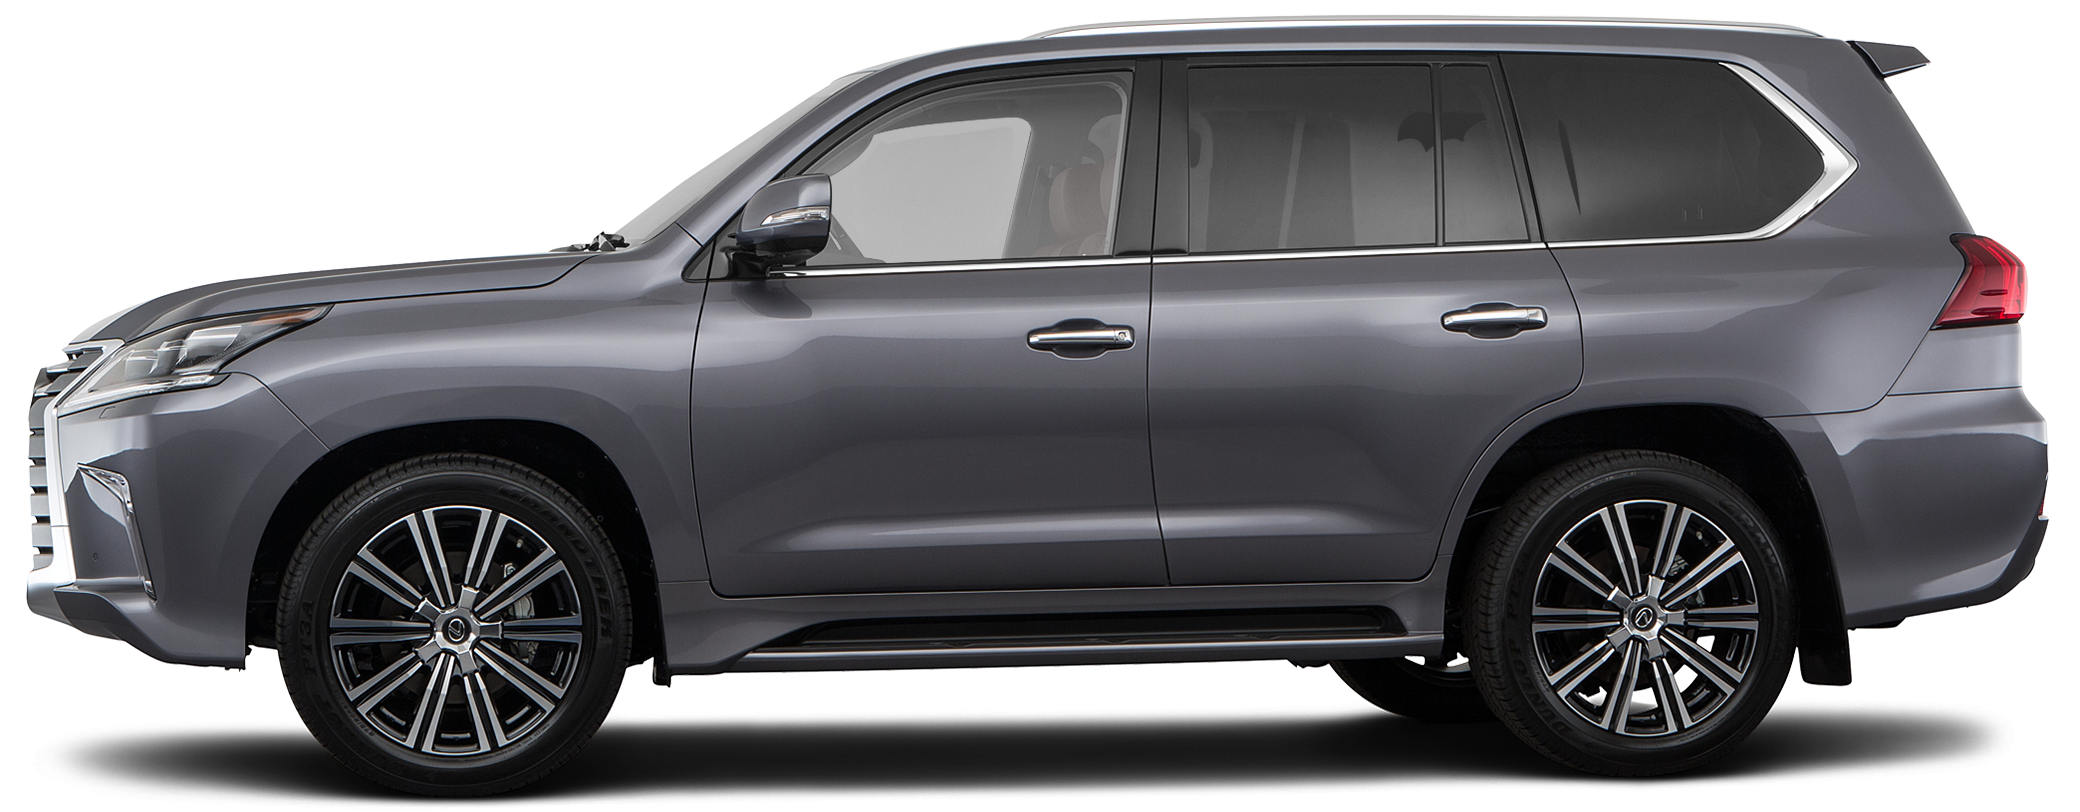 2019 Lexus LX 570 SUV Two-Row